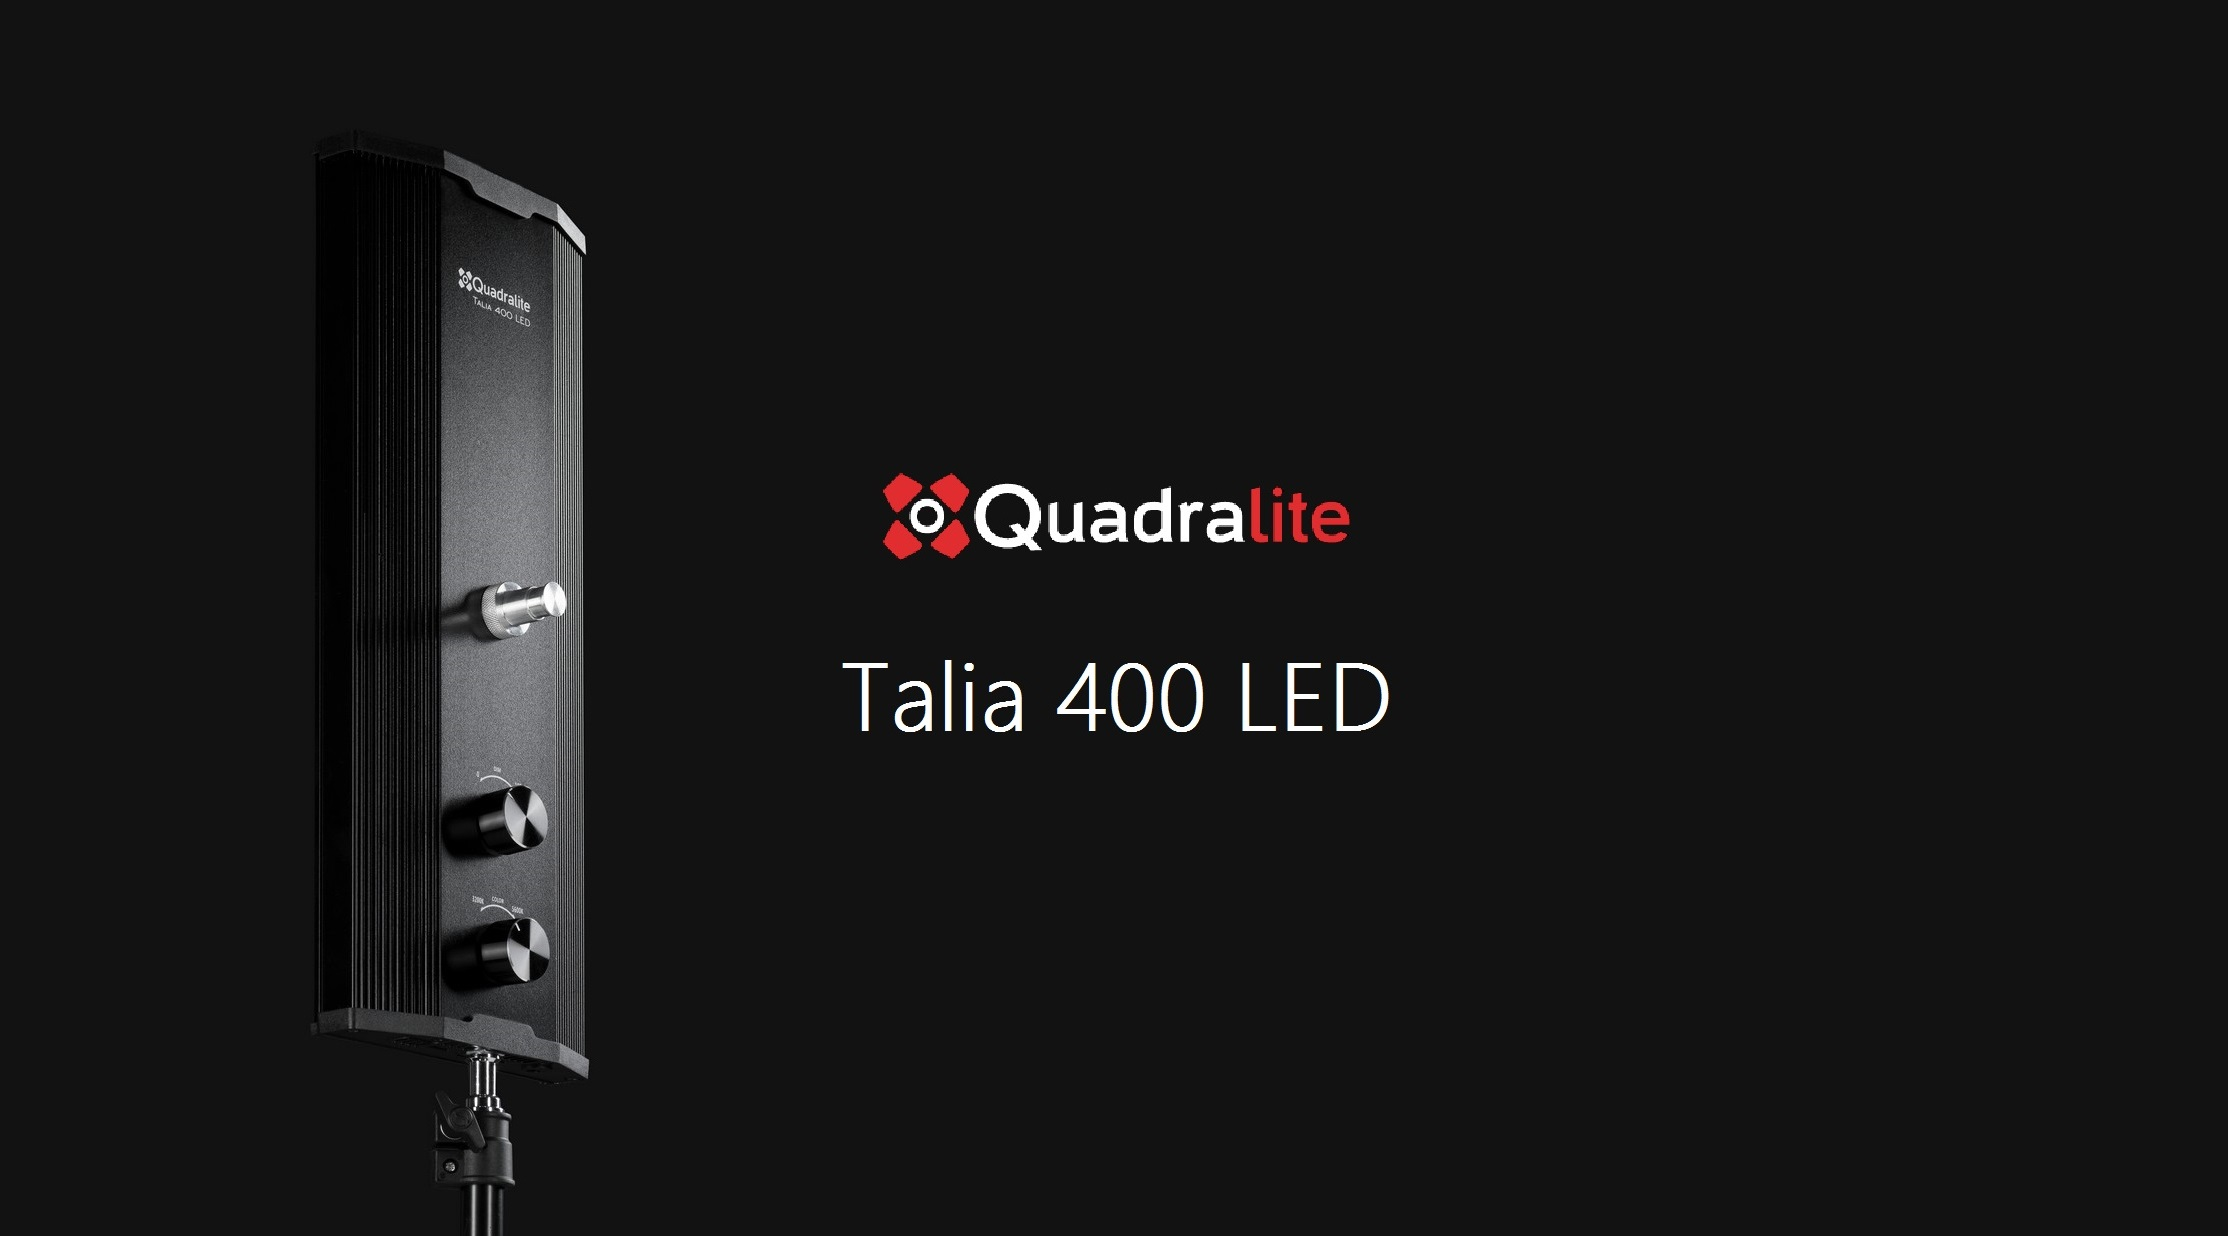 New Quadralite Talia 400 LED Panels